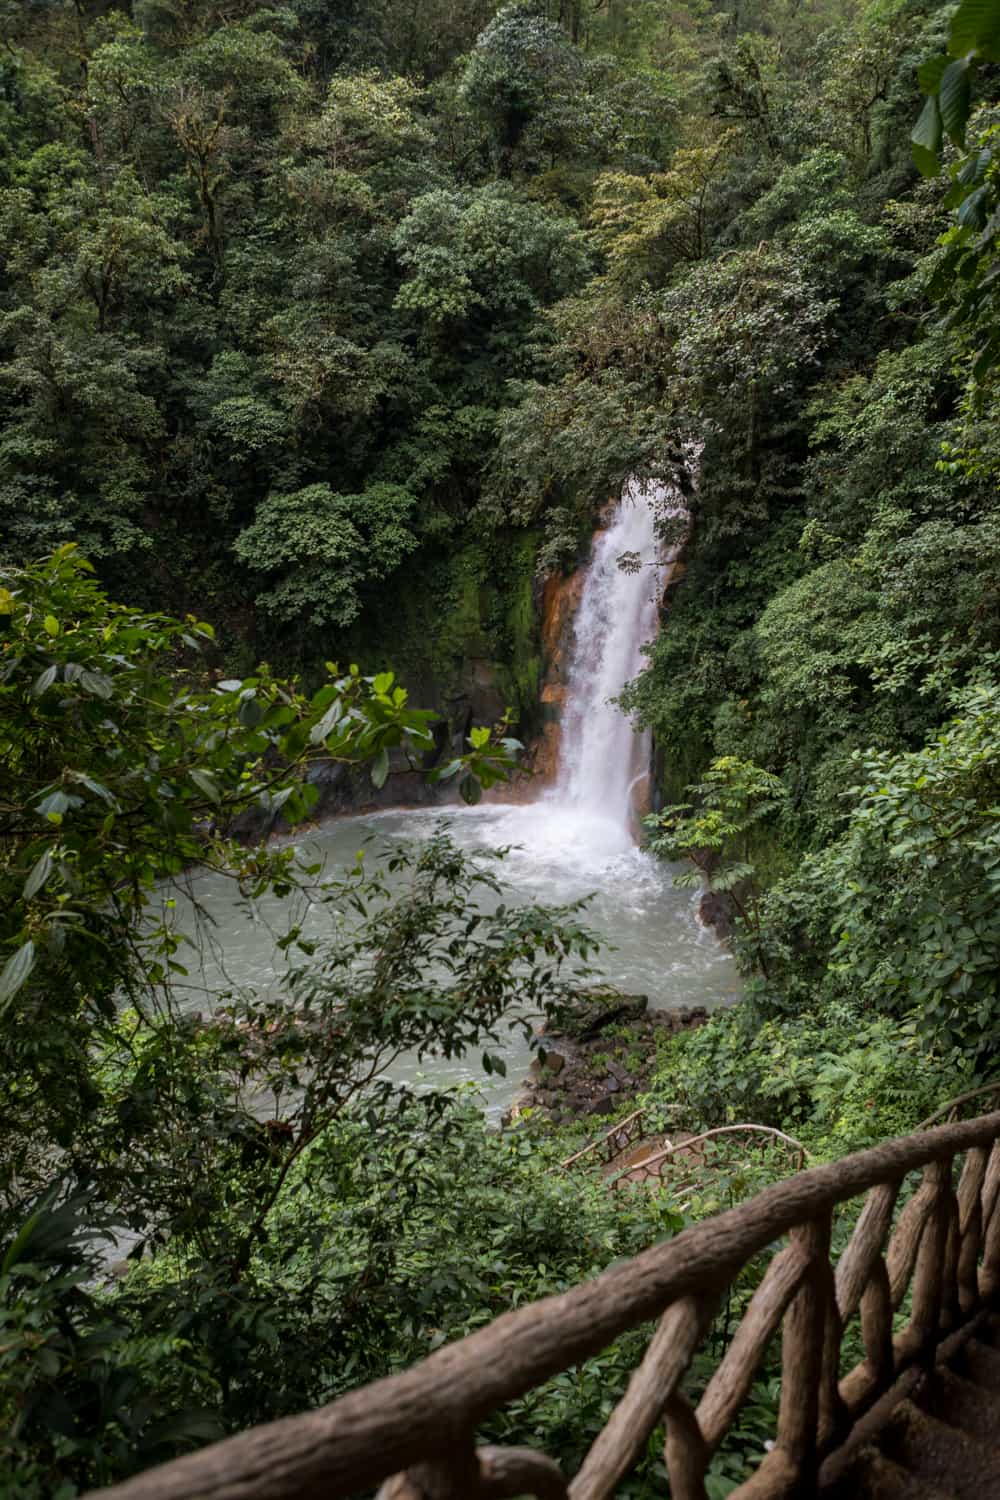 Wedding ceremony site at Rio Celeste Waterfall in Costa Rica.